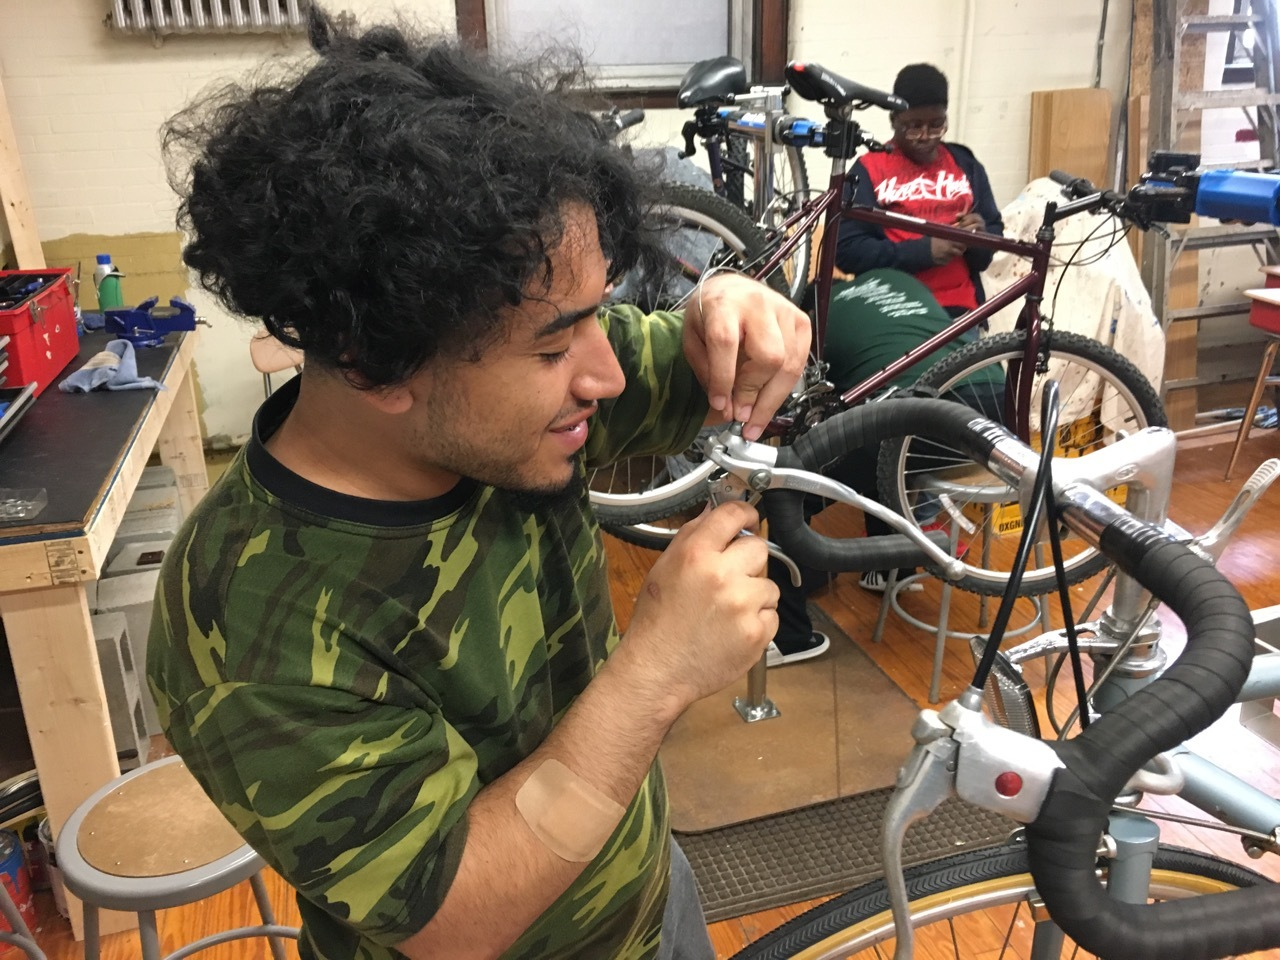 Two young people working on bikes in stands